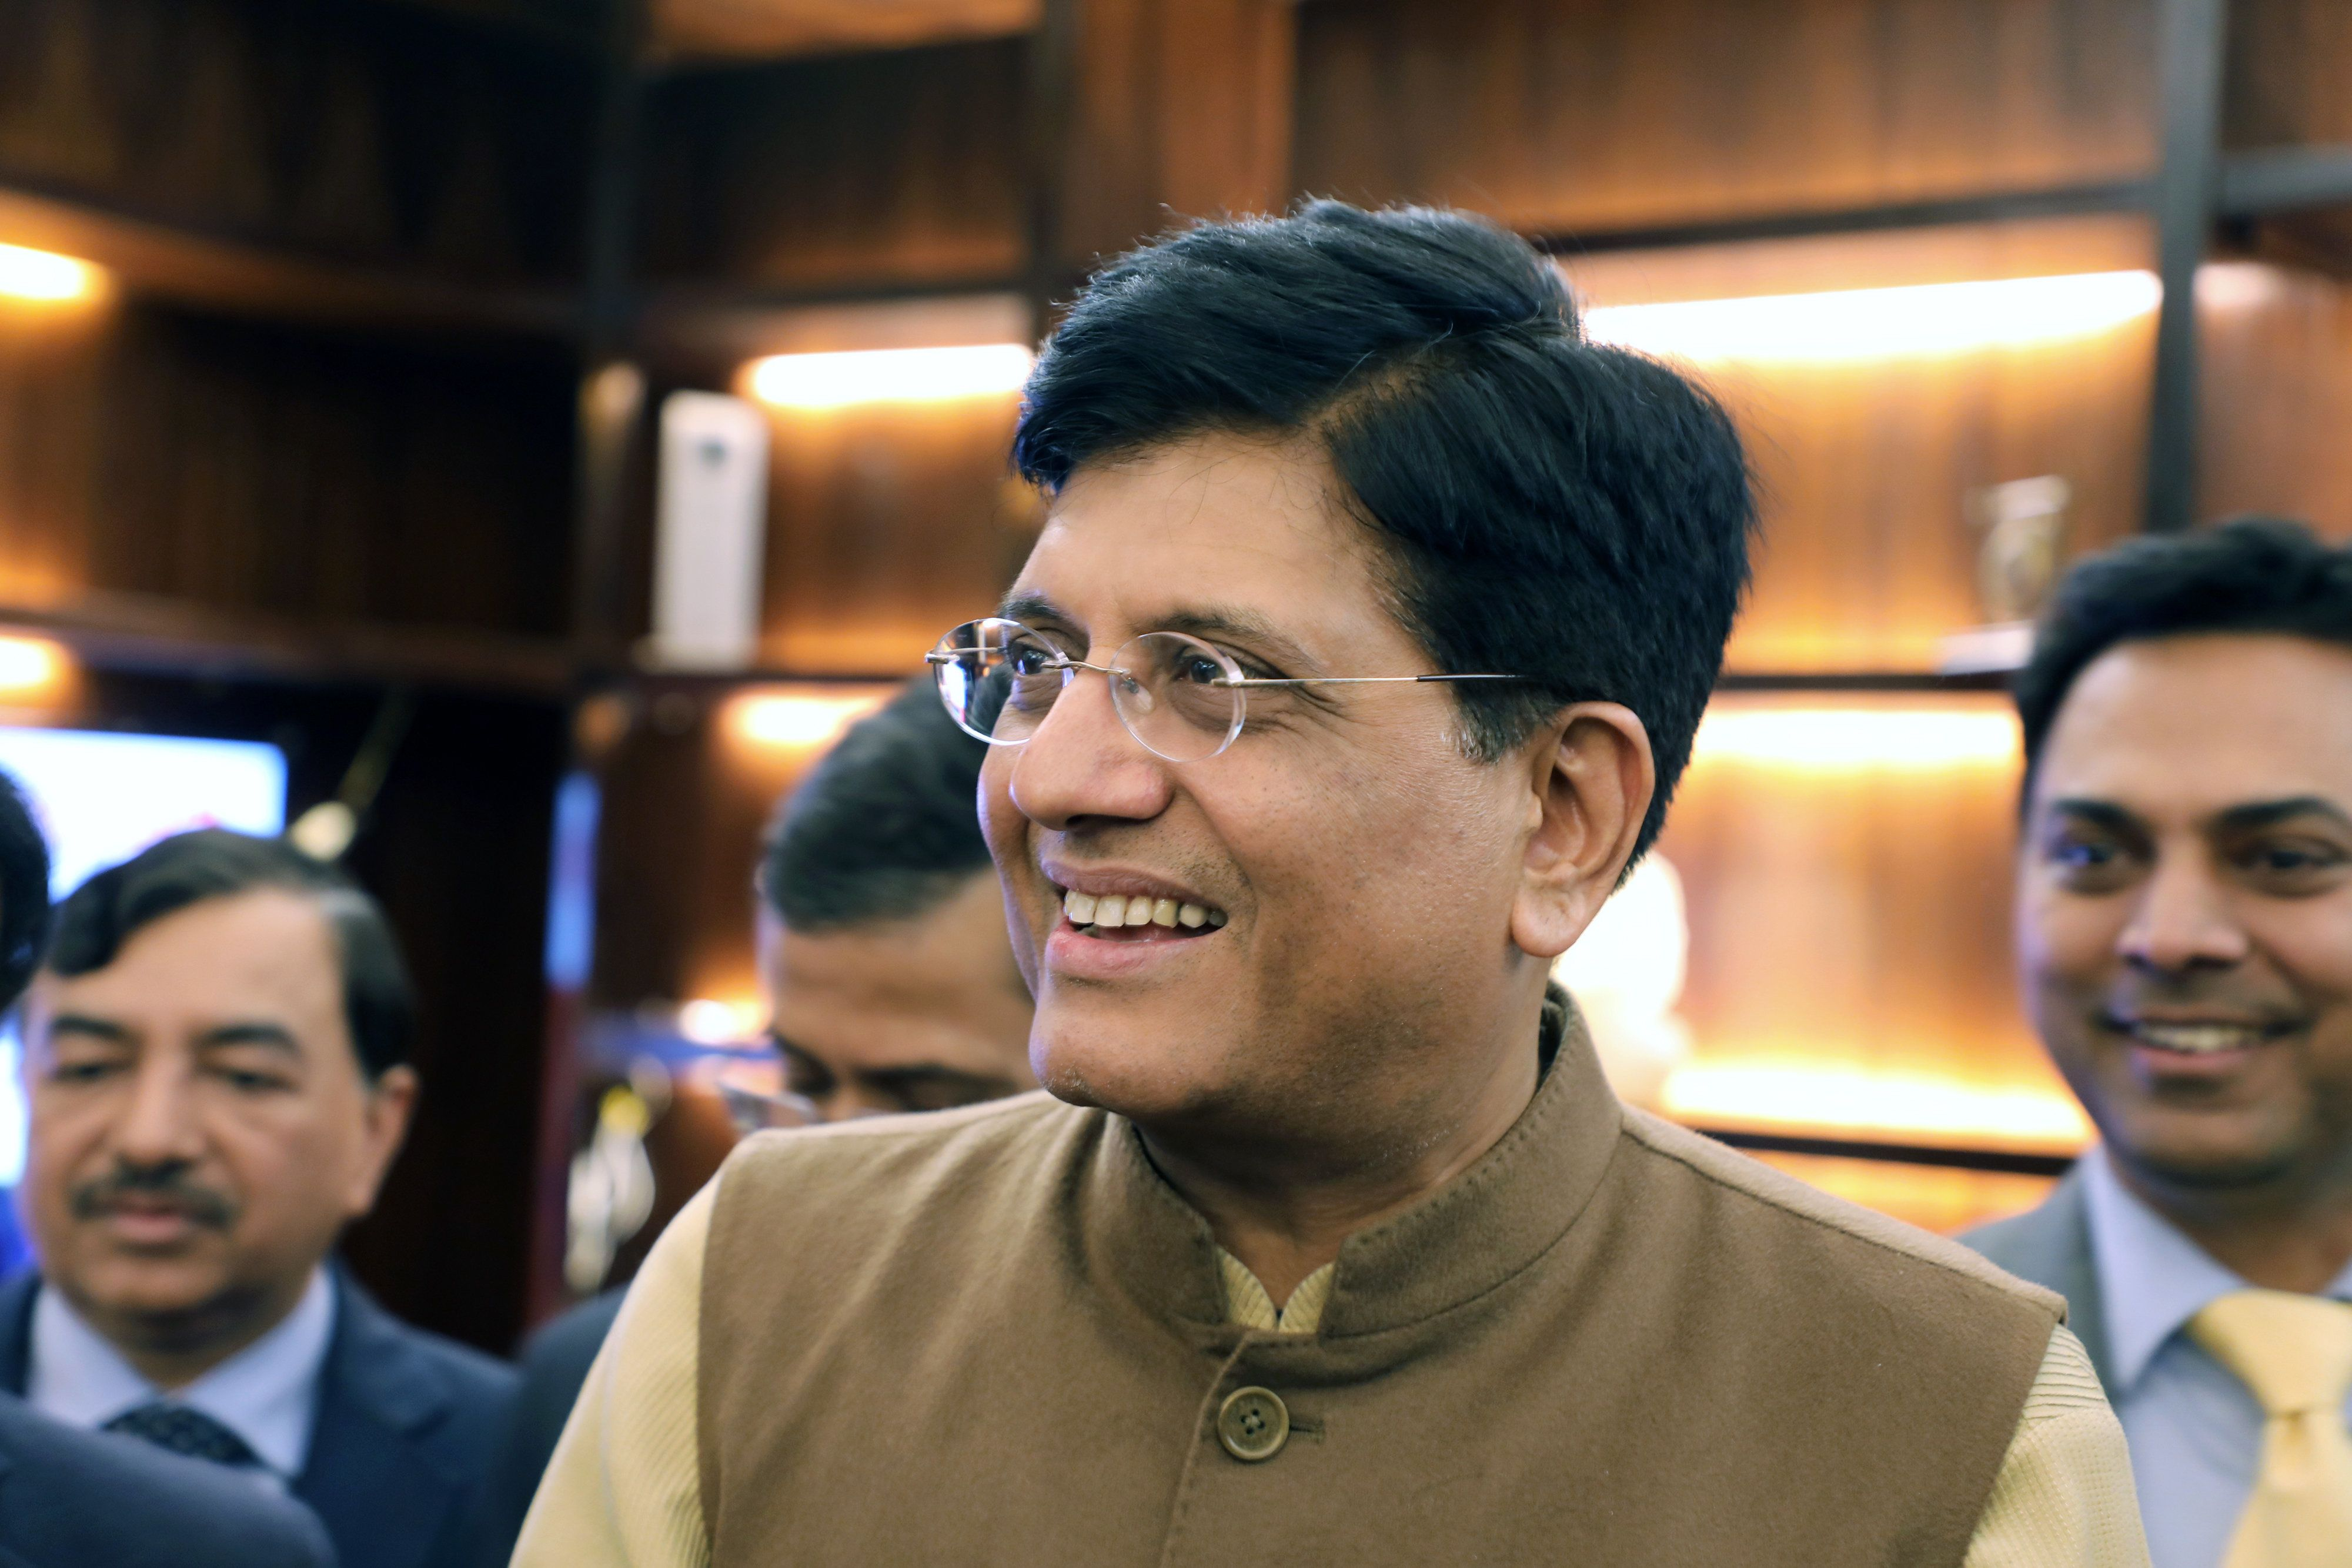 No tax for annual income upto Rs 5 lakh, says Piyush Goyal